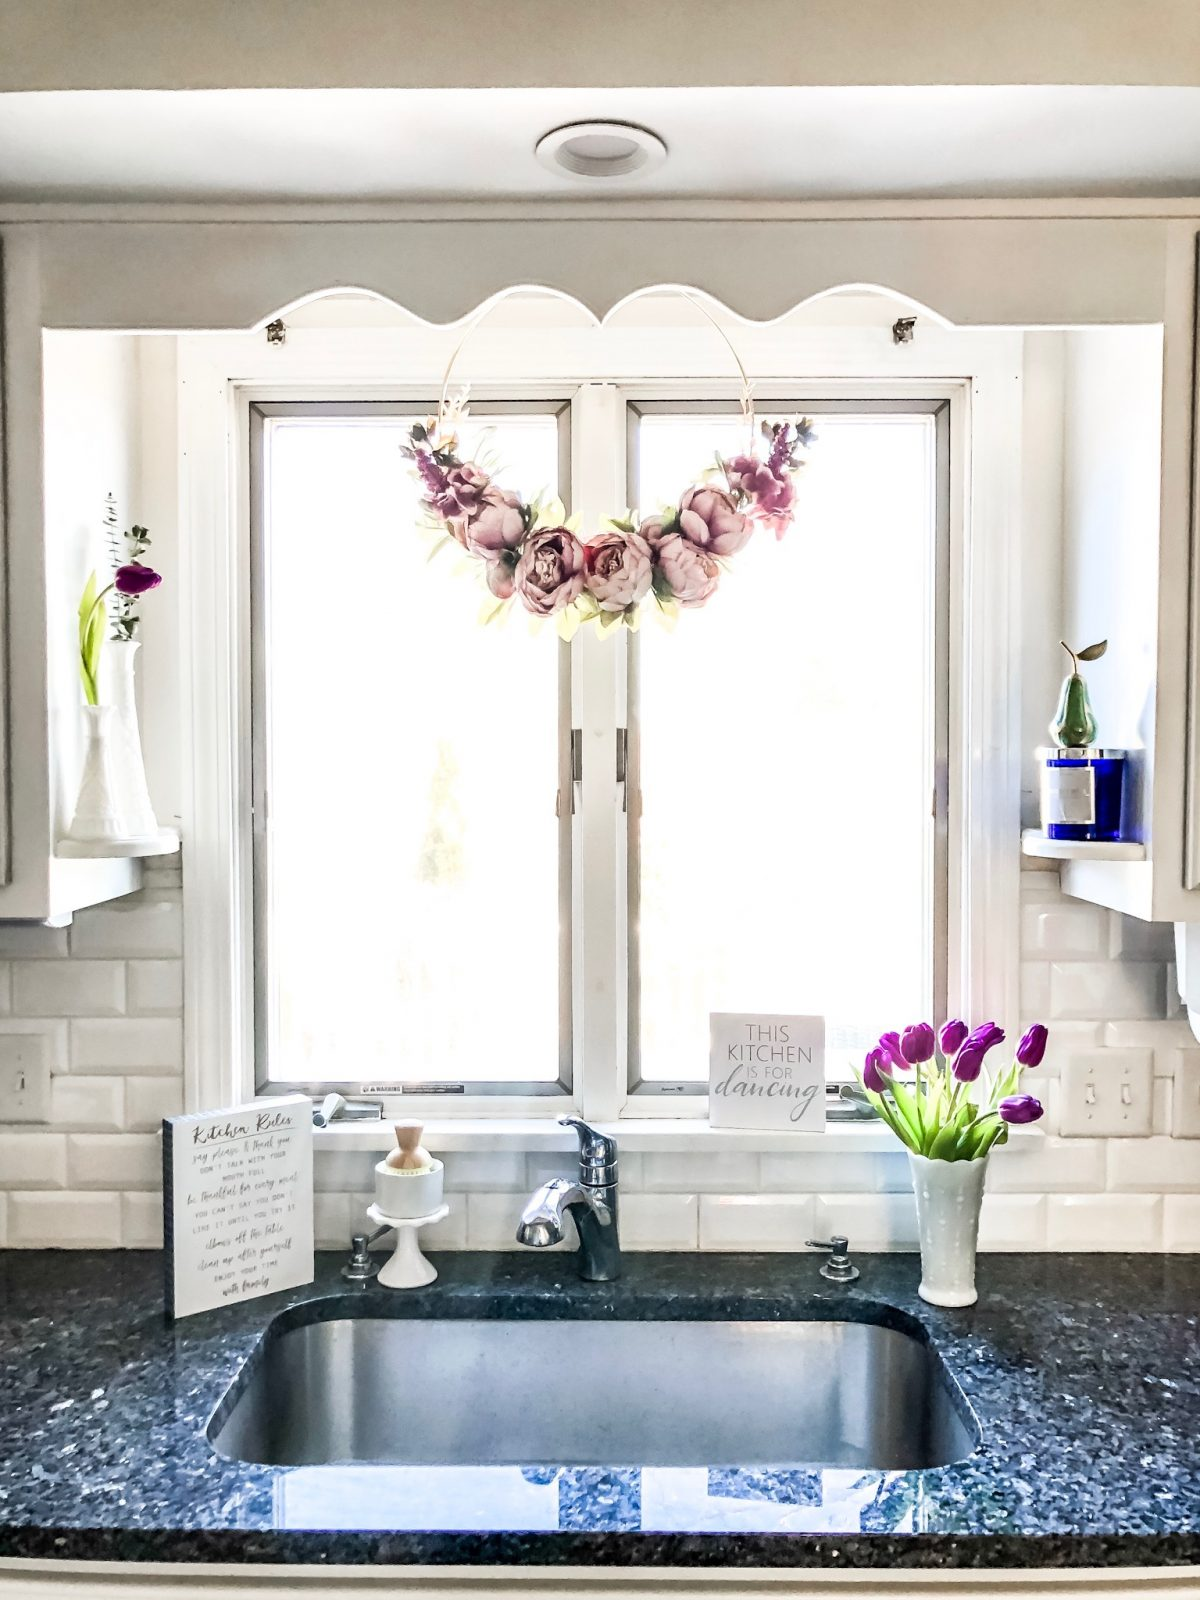 Purple floral ring wreath hanging over kitchen sink in window